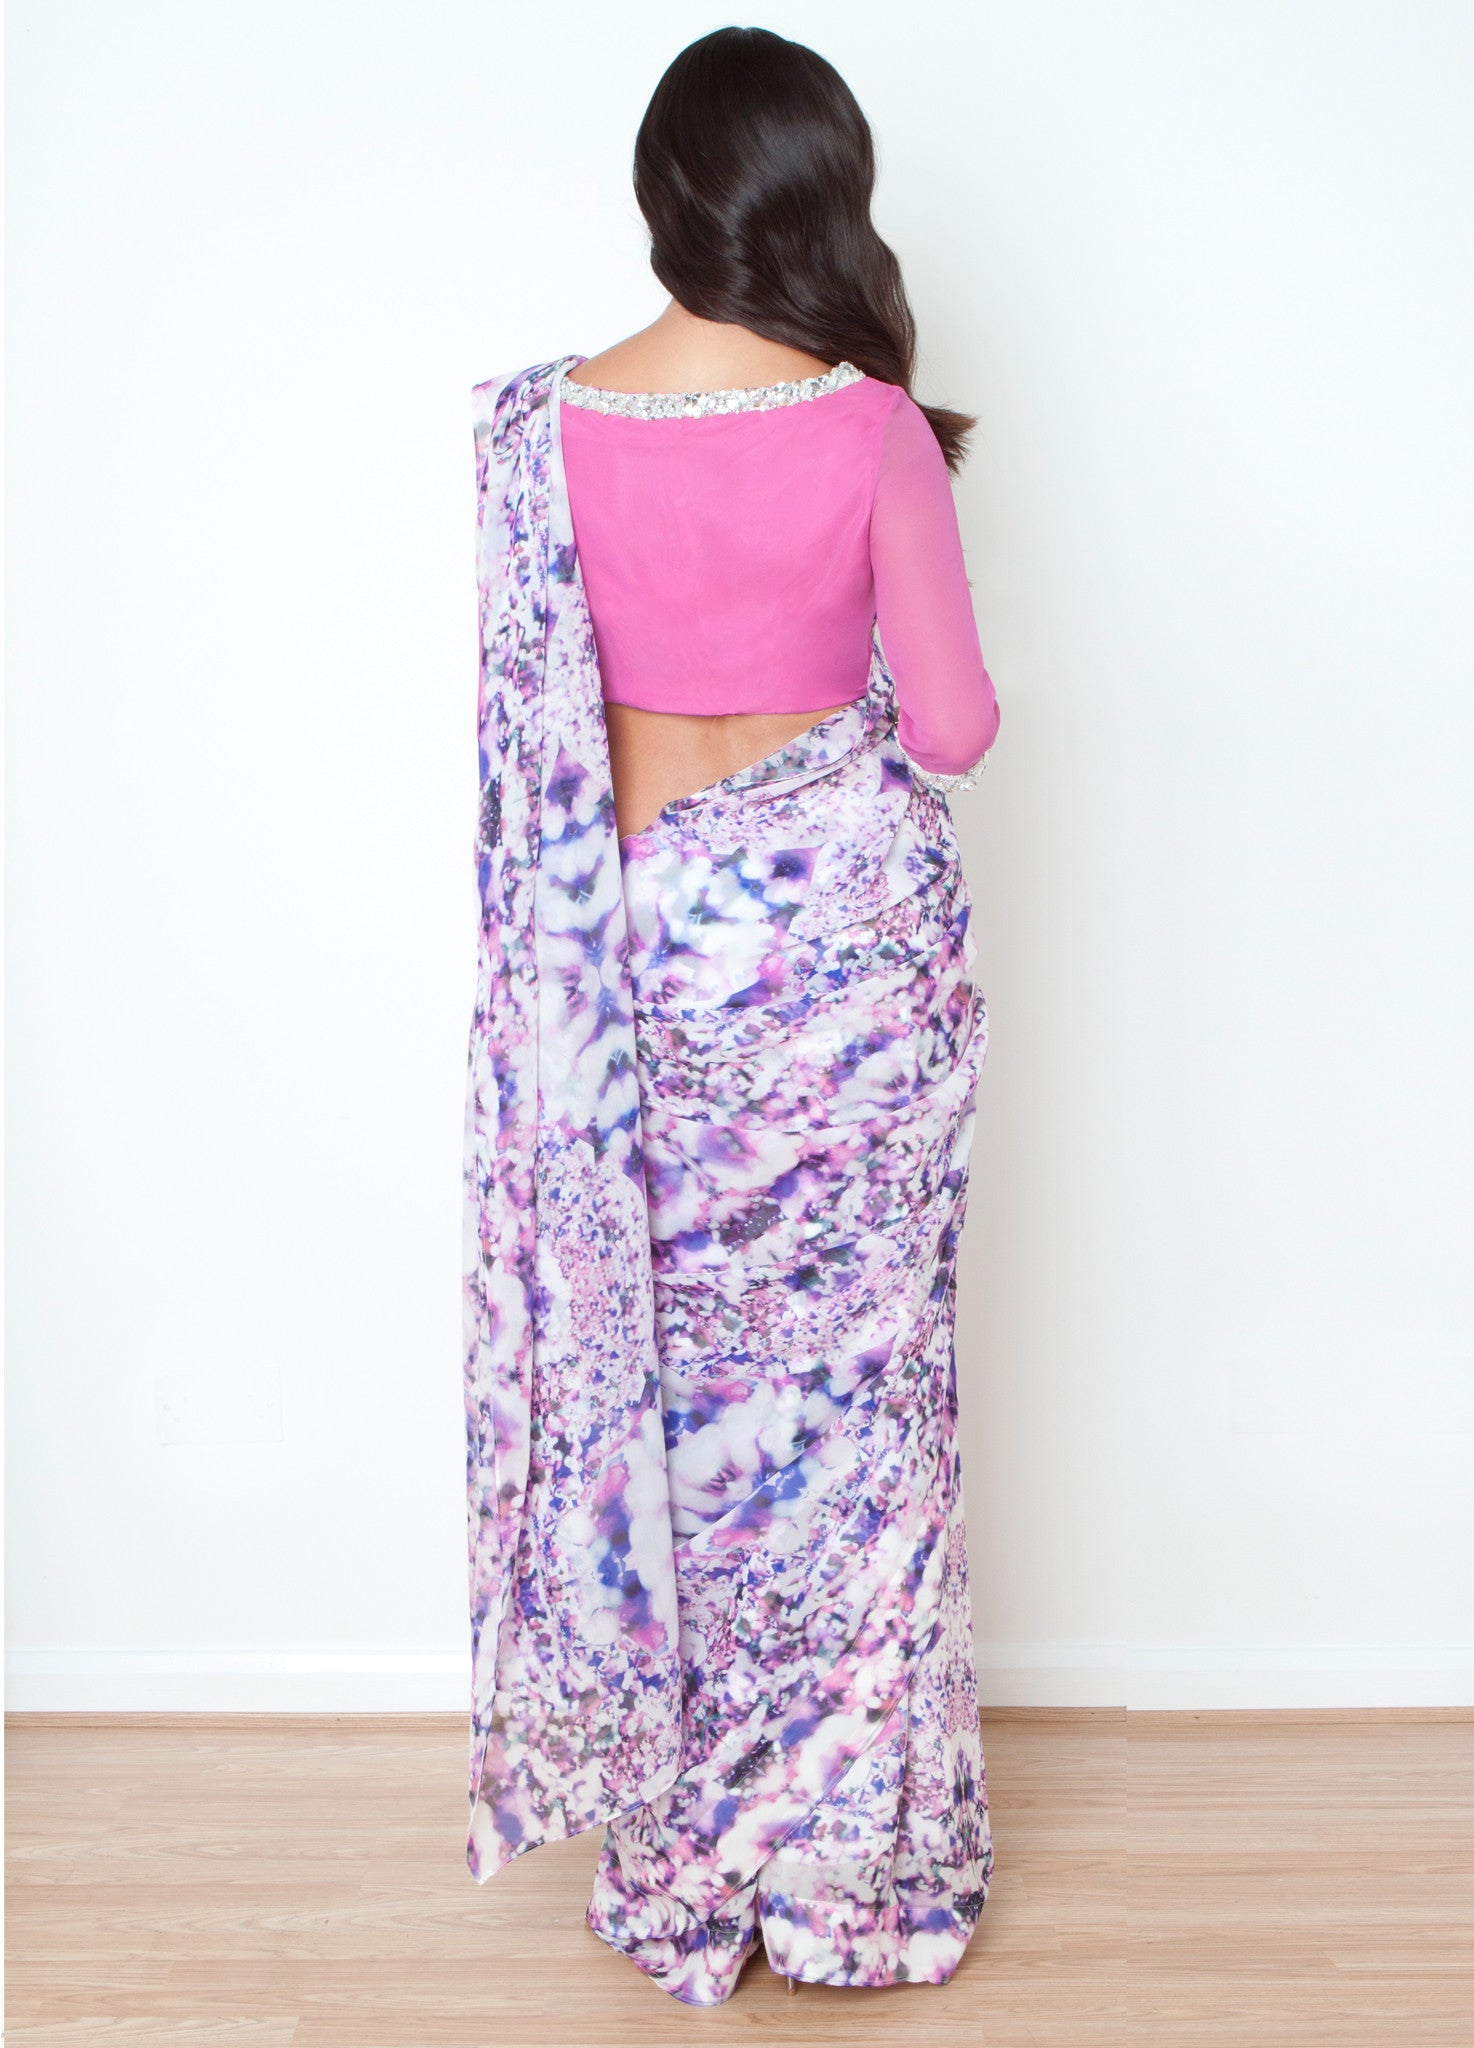 Iris Sari with Rosewood Blouse